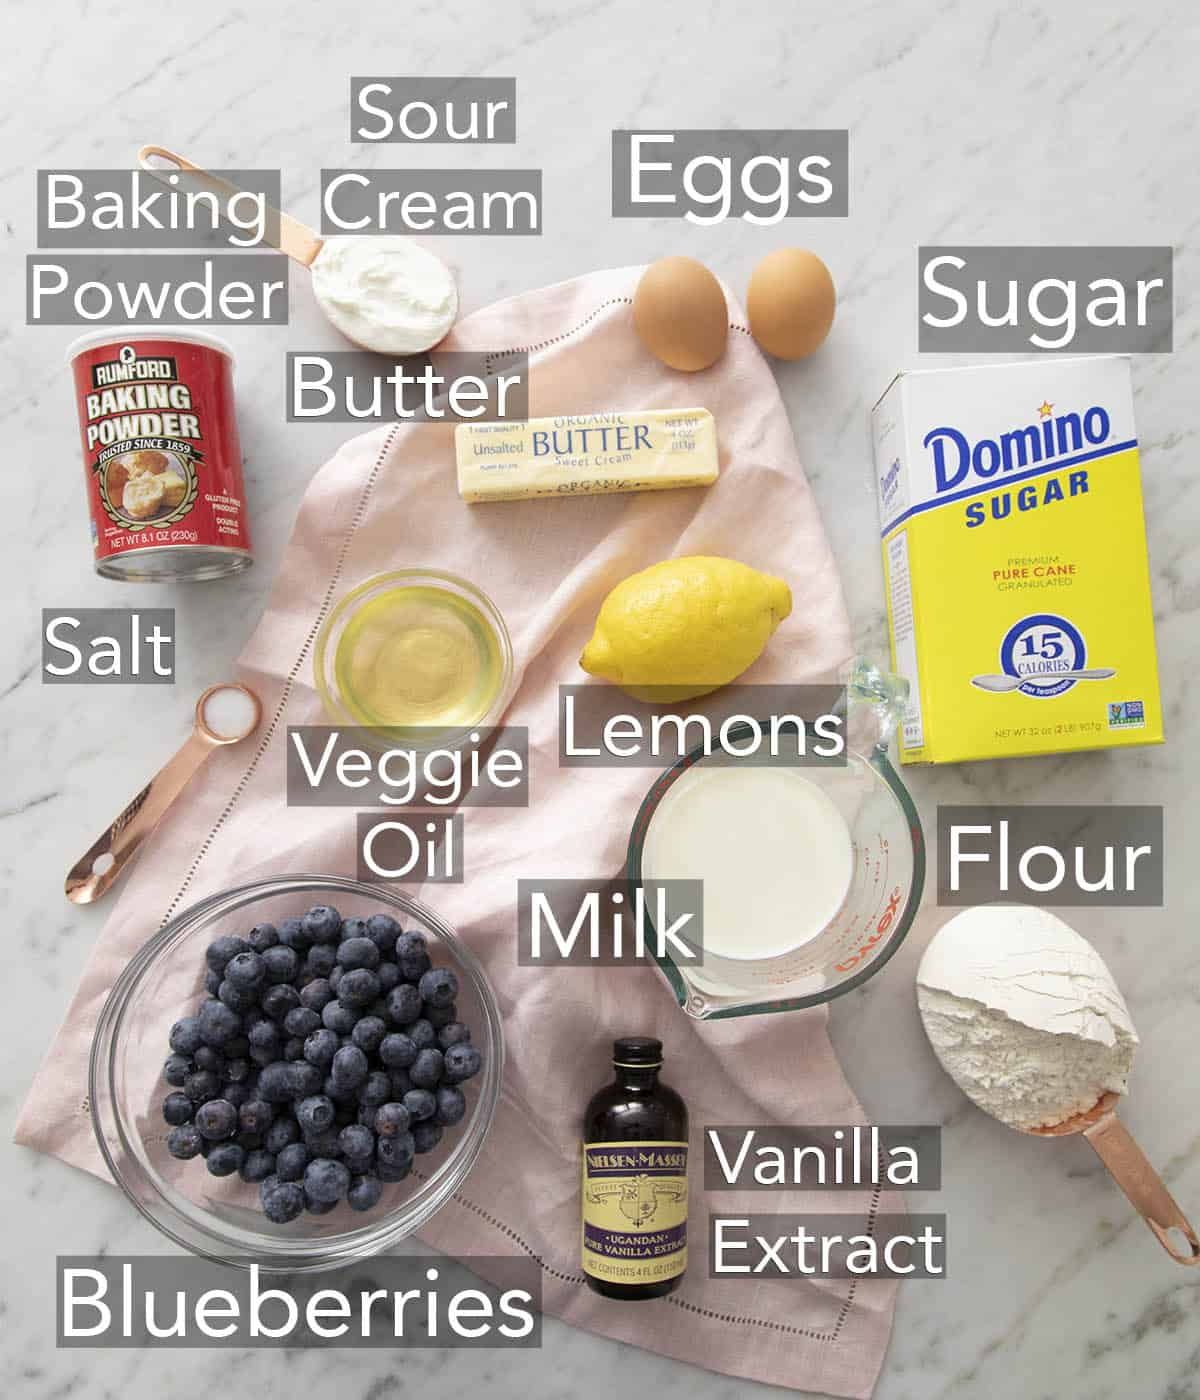 Ingredients for making blueberry muffins on a counter.